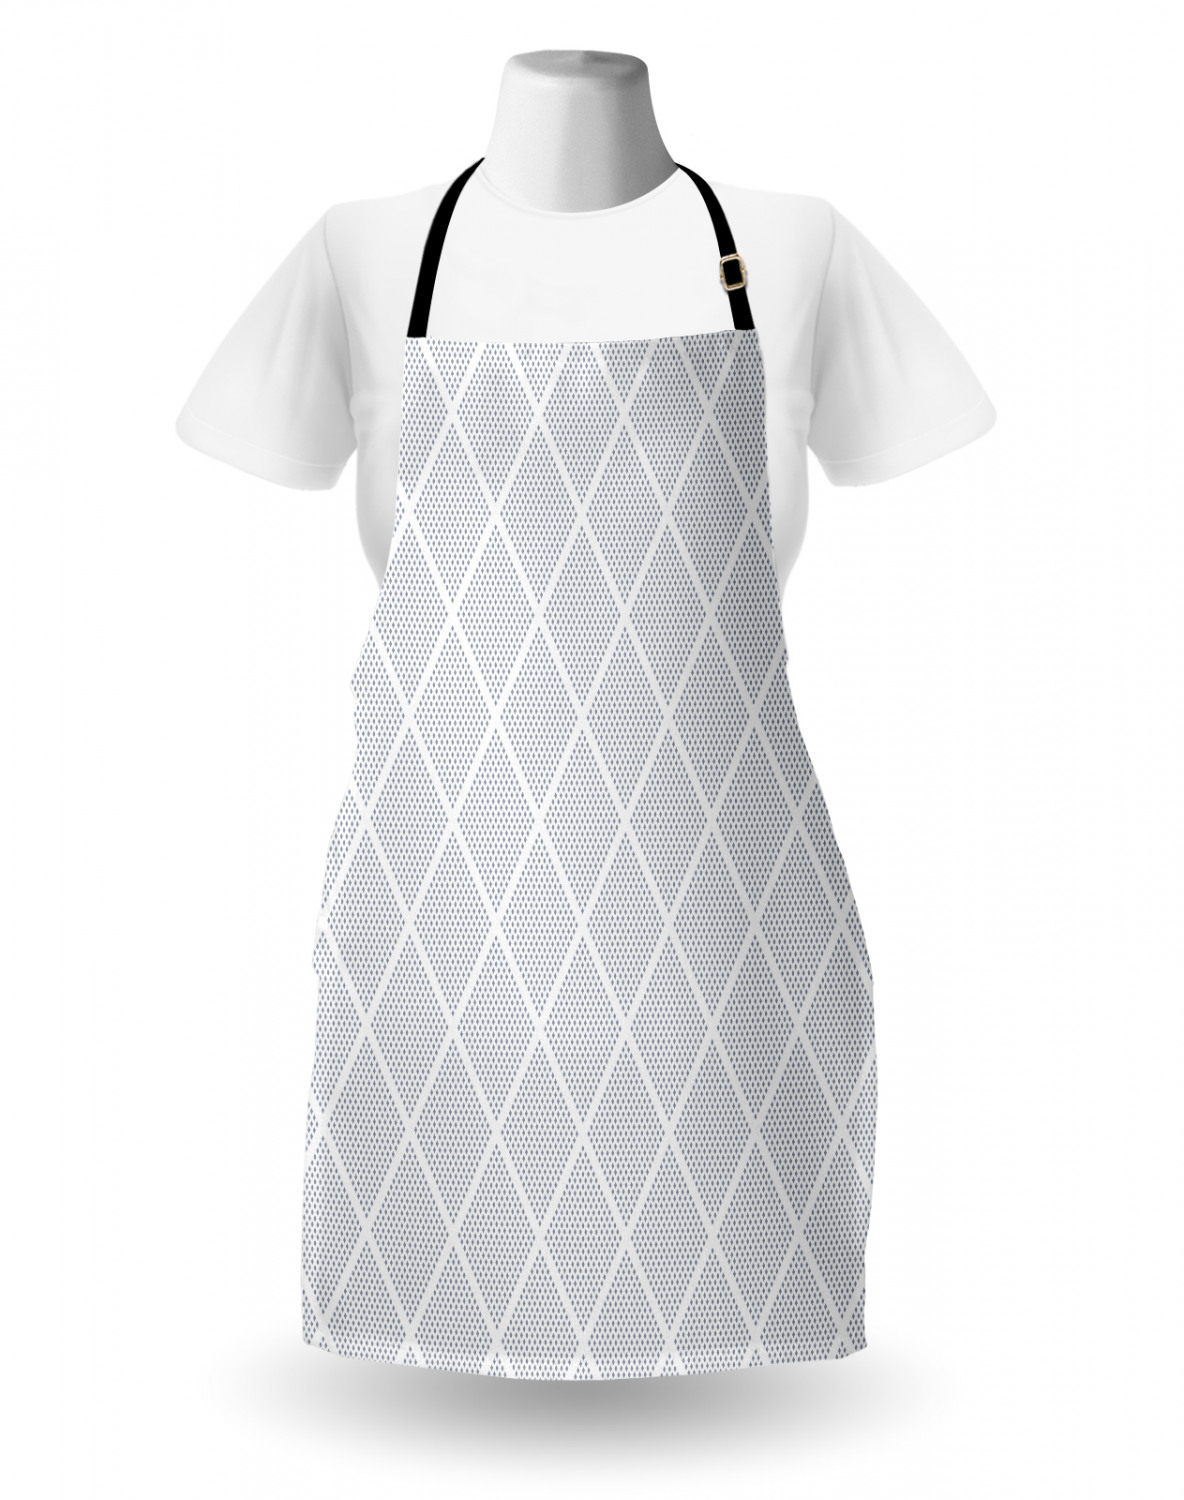 Ambesonne-Outdoor-Use-Apron-with-Adjustable-Neck-Strap-for-Gardening-and-Cooking miniatura 50